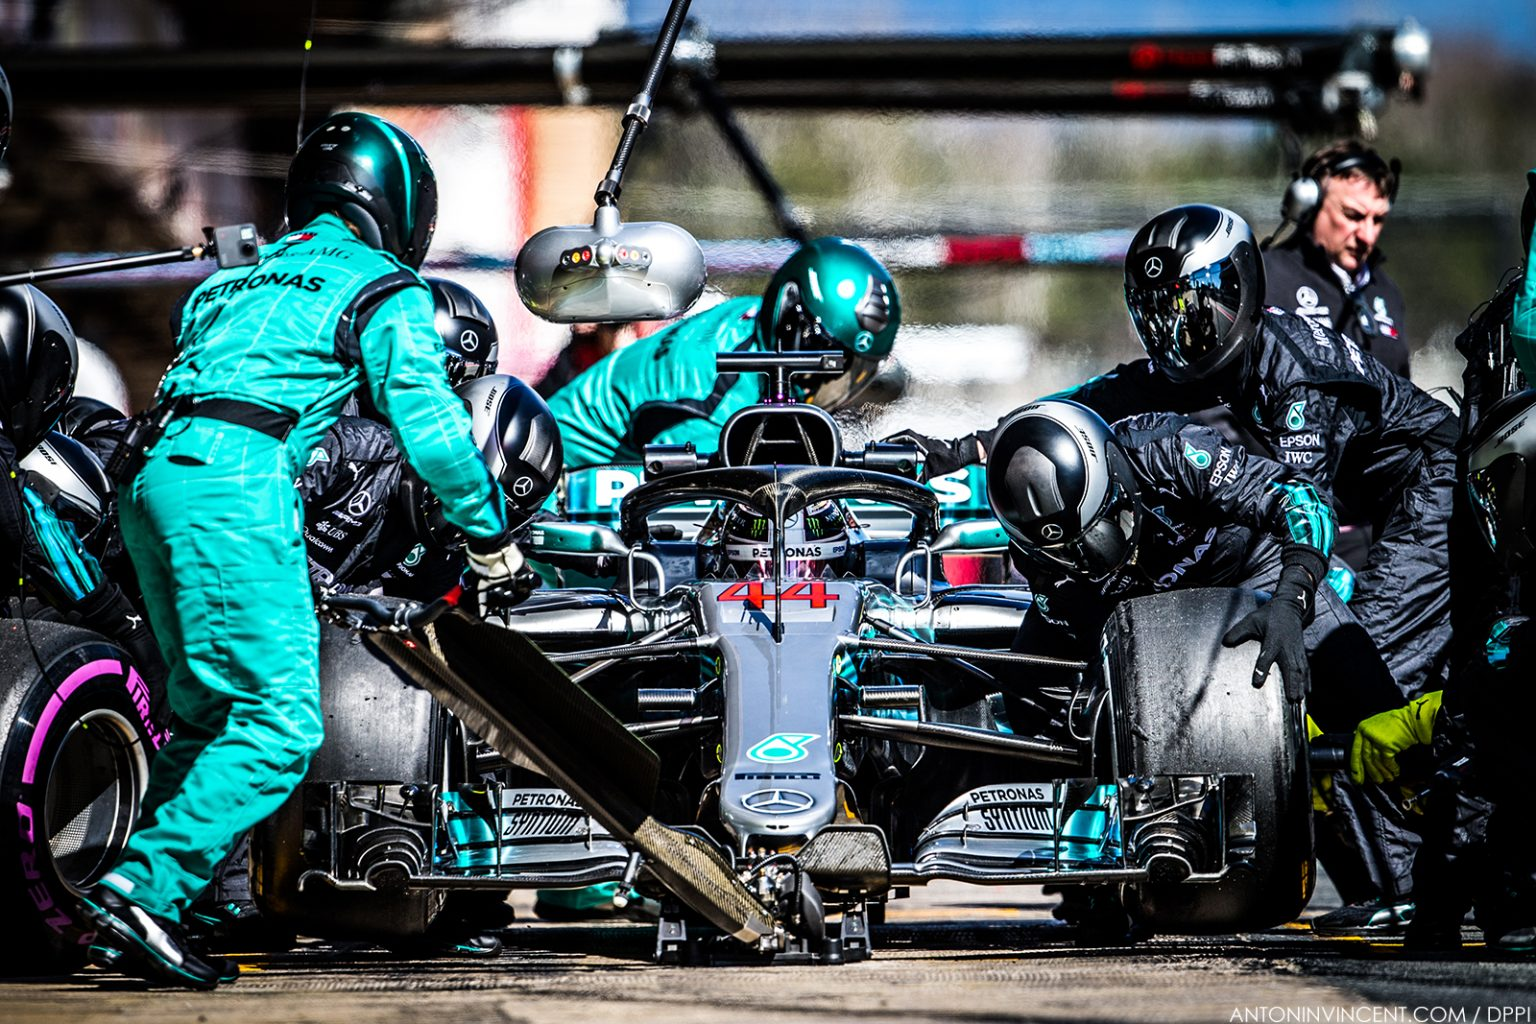 44 HAMILTON Lewis (gbr), Mercedes W09 Hybrid EQ Power+ team Mercedes GP, action pitstop practice during Formula 1 winter tests 2018 at Barcelona, Spain from  March 6 to 9  - Photo Antonin Vincent / DPPI